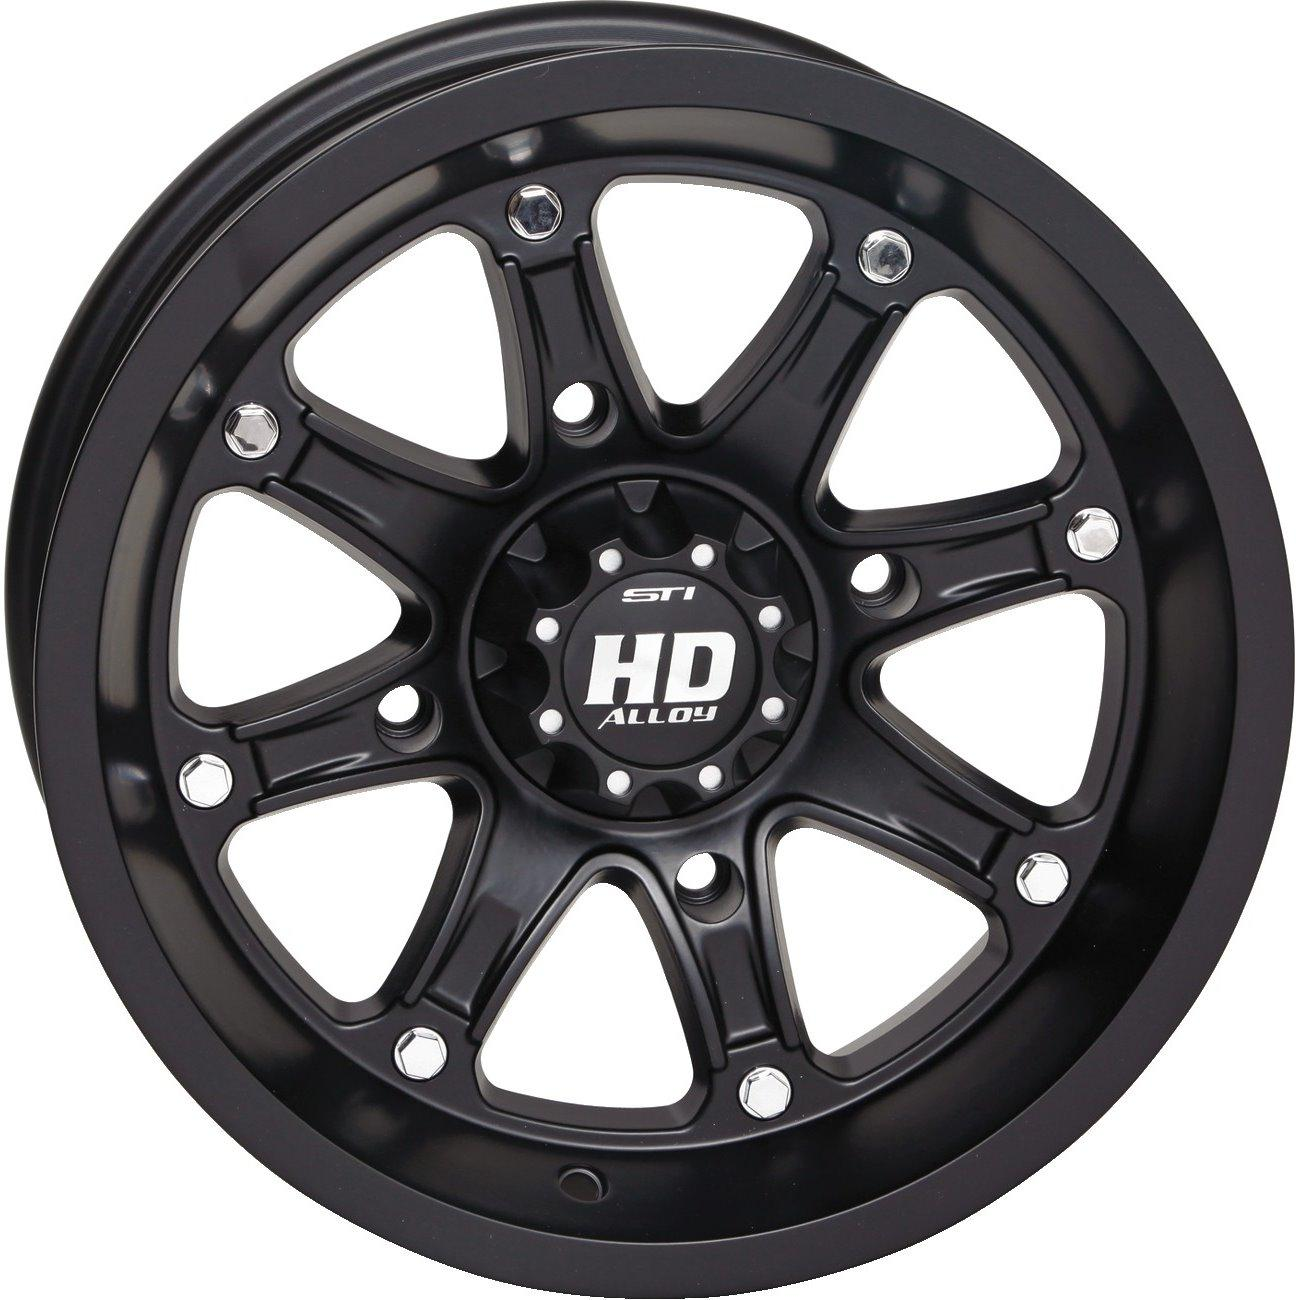 "STI - HD4 14"" Wheel - Matte Black"